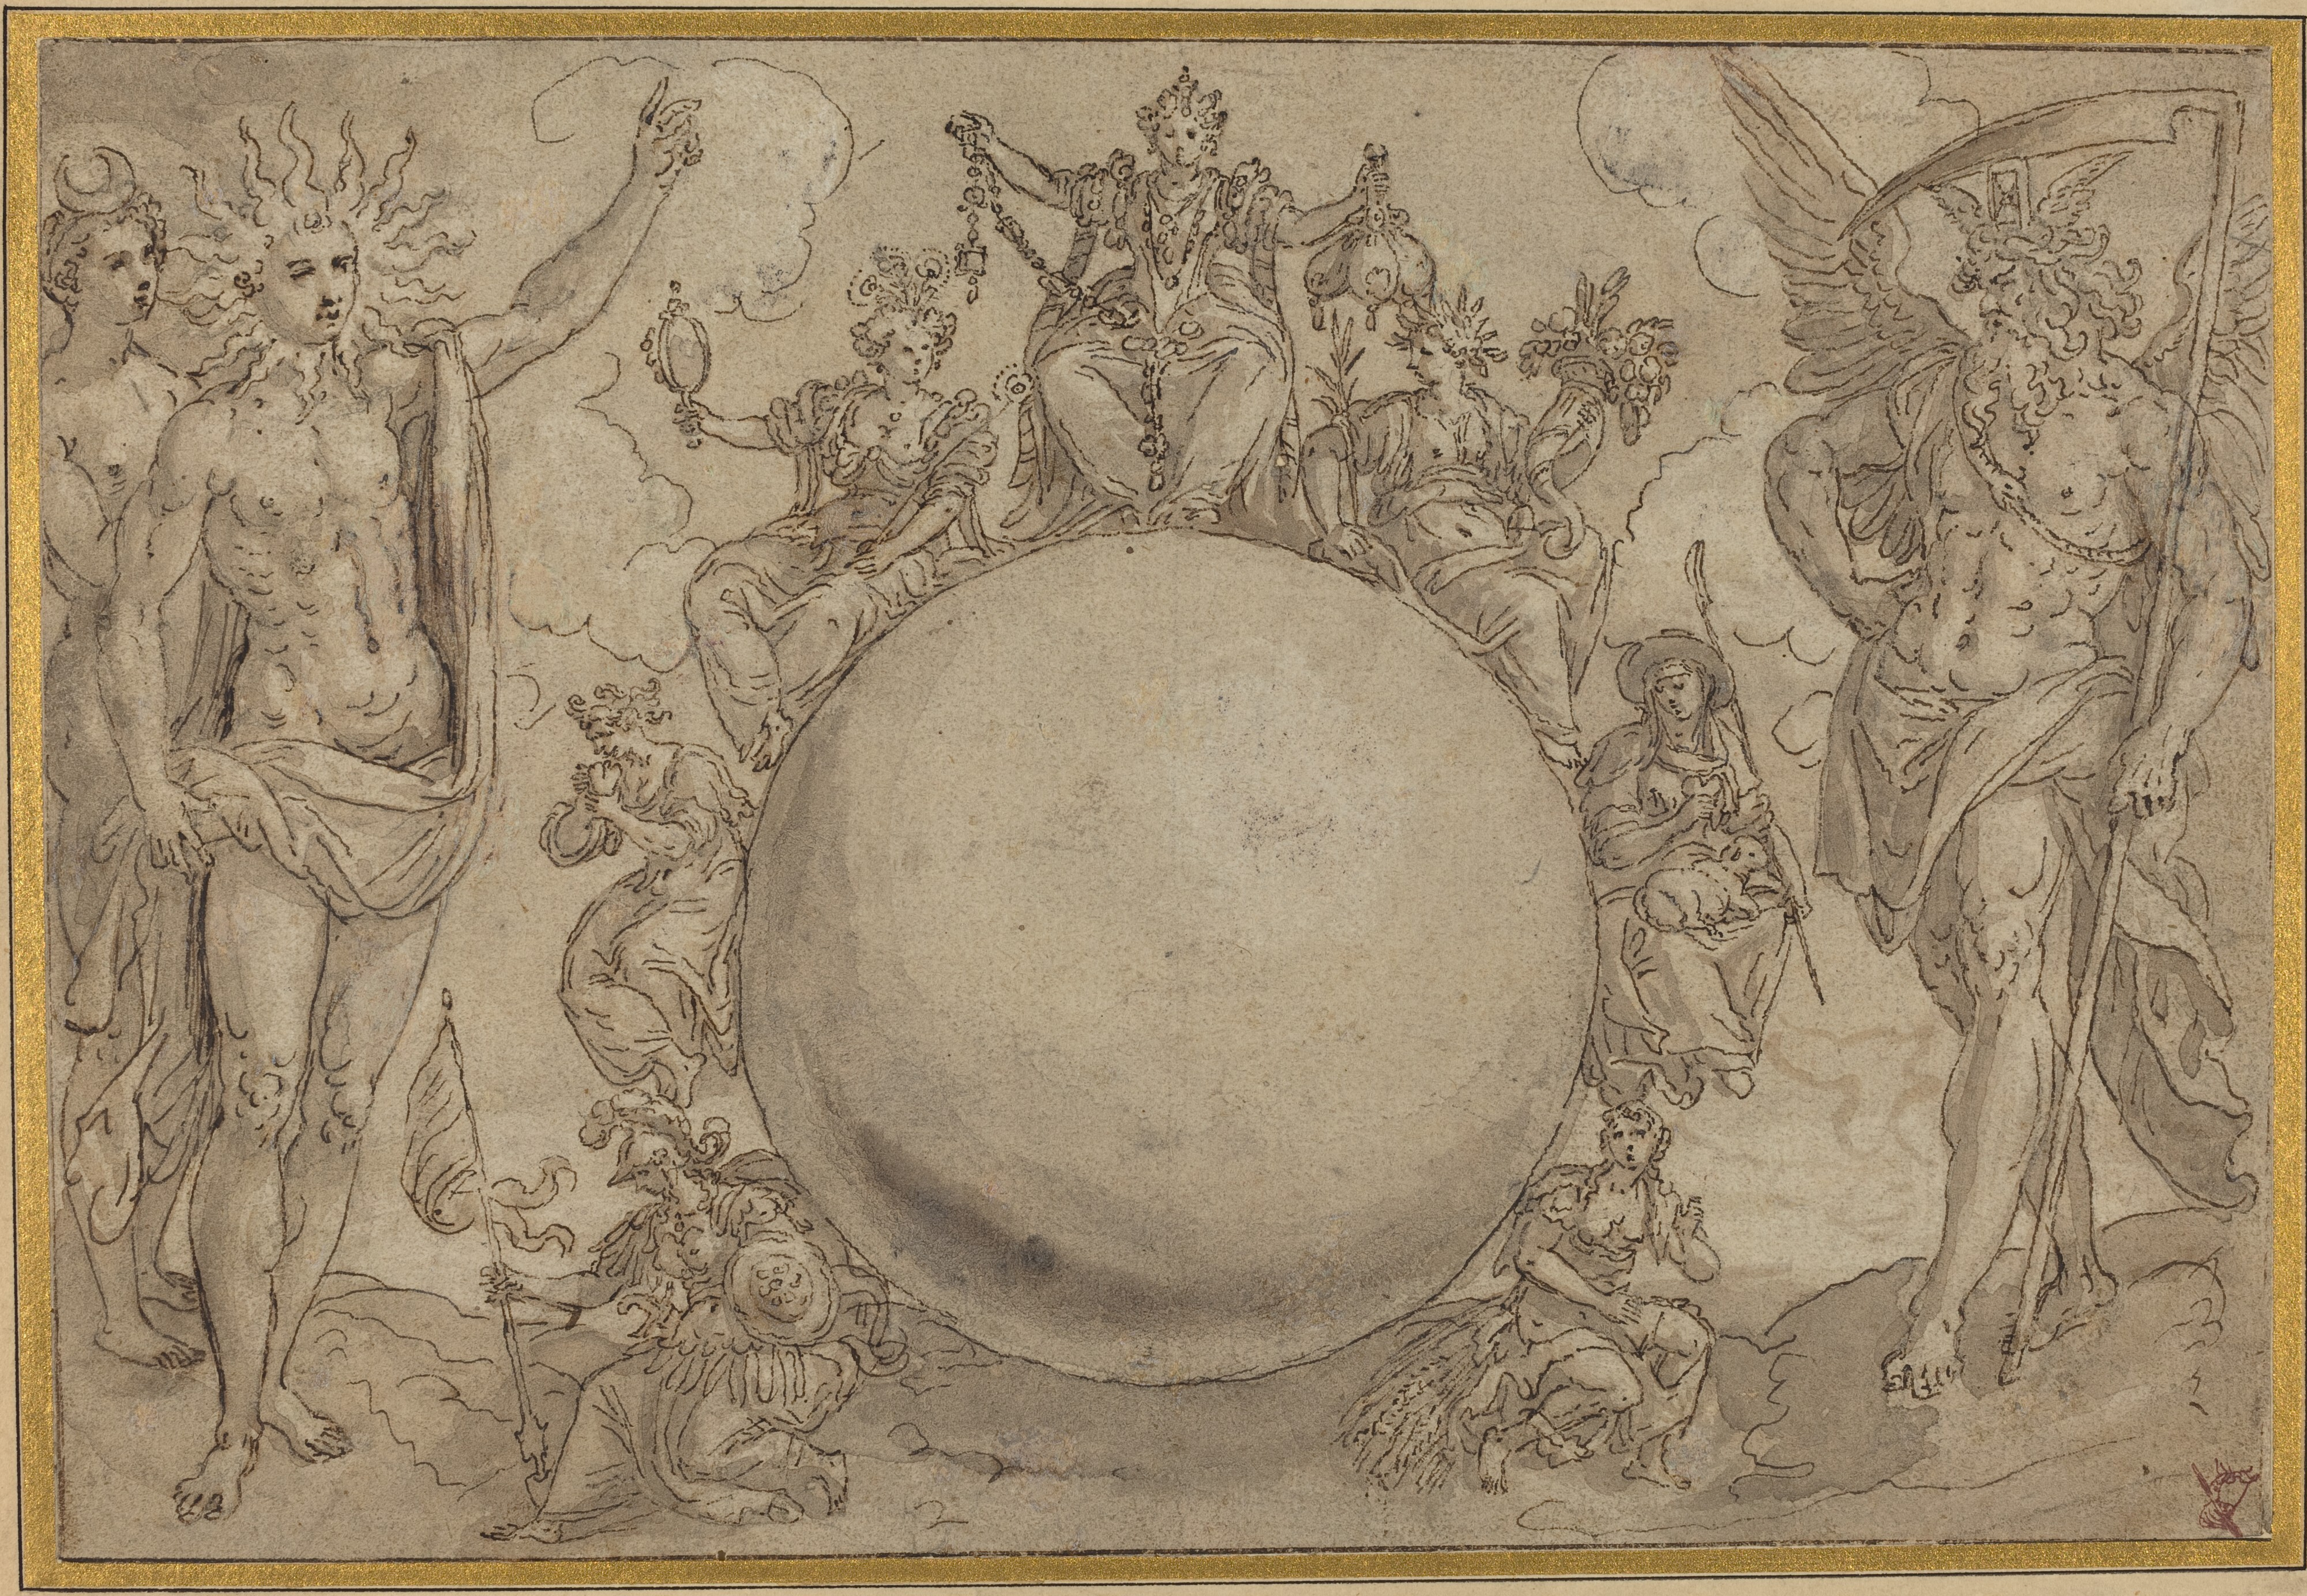 Apollo, Diana, and Time with the Cyclic Vicissitudes of Human Life, c. 1561, by Maarten de Vos